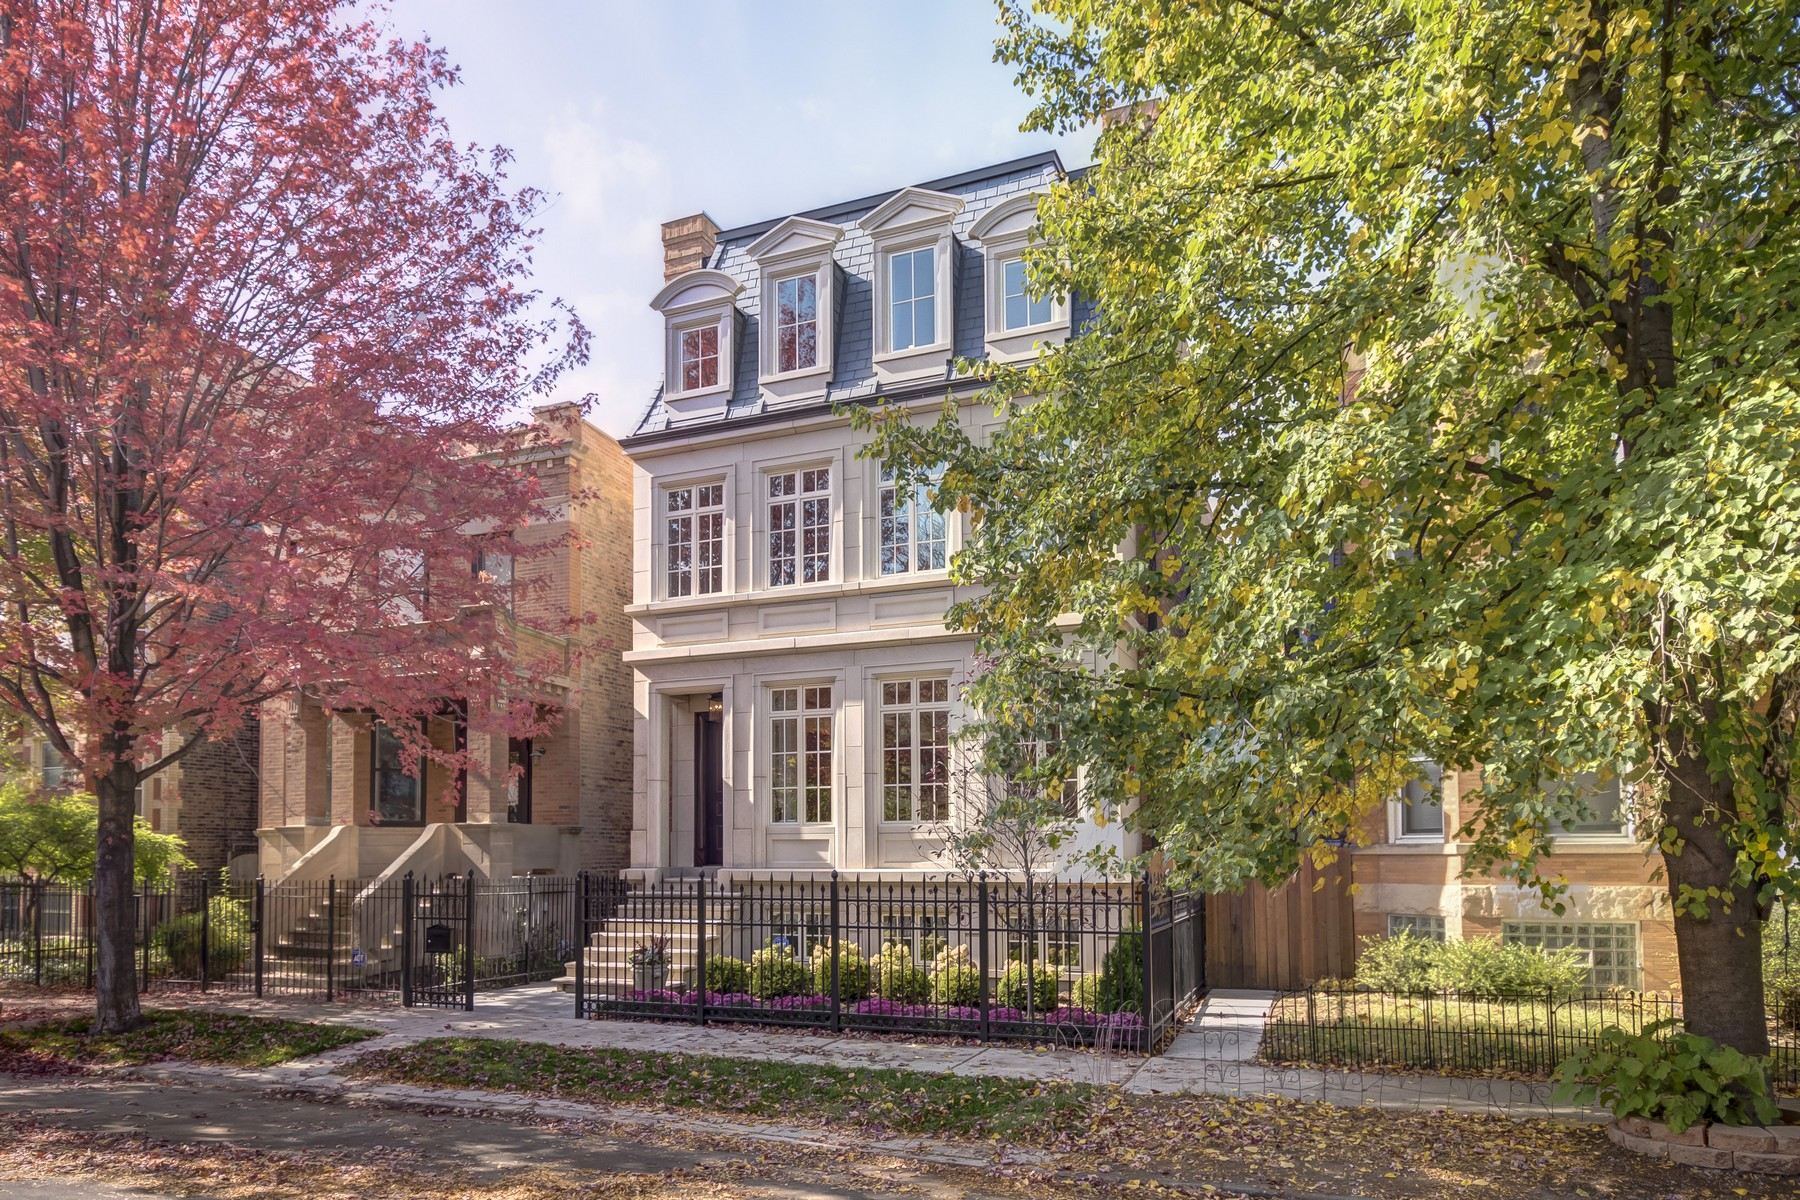 3716 N Lakewood Ave, Chicago, IL 60613